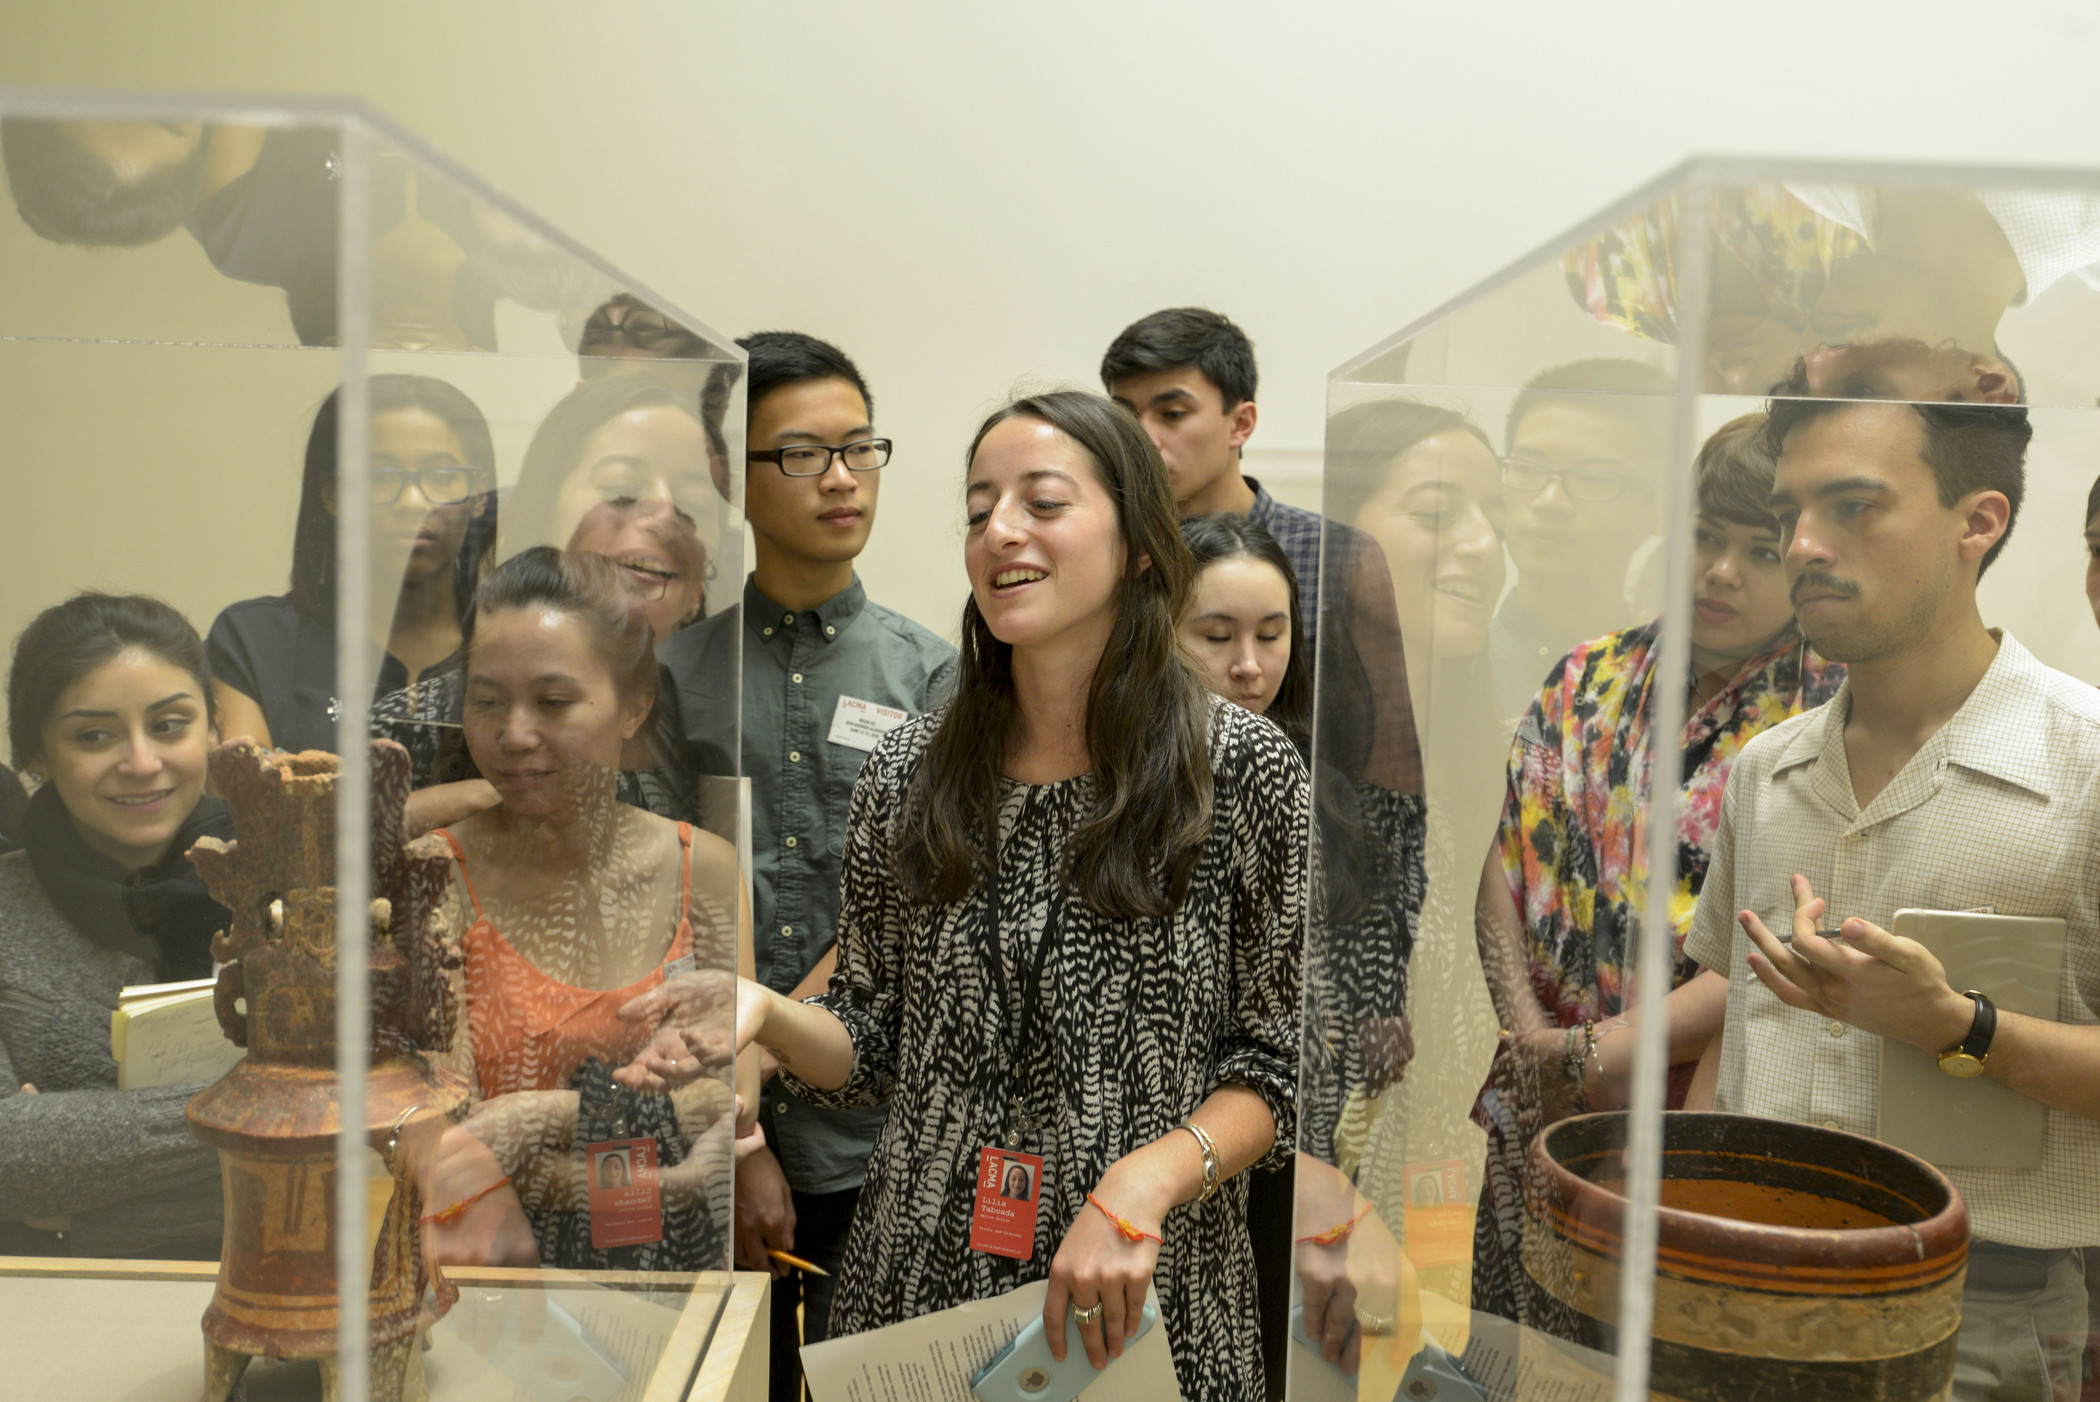 Mellon Academy participants looking at objects in exhibition